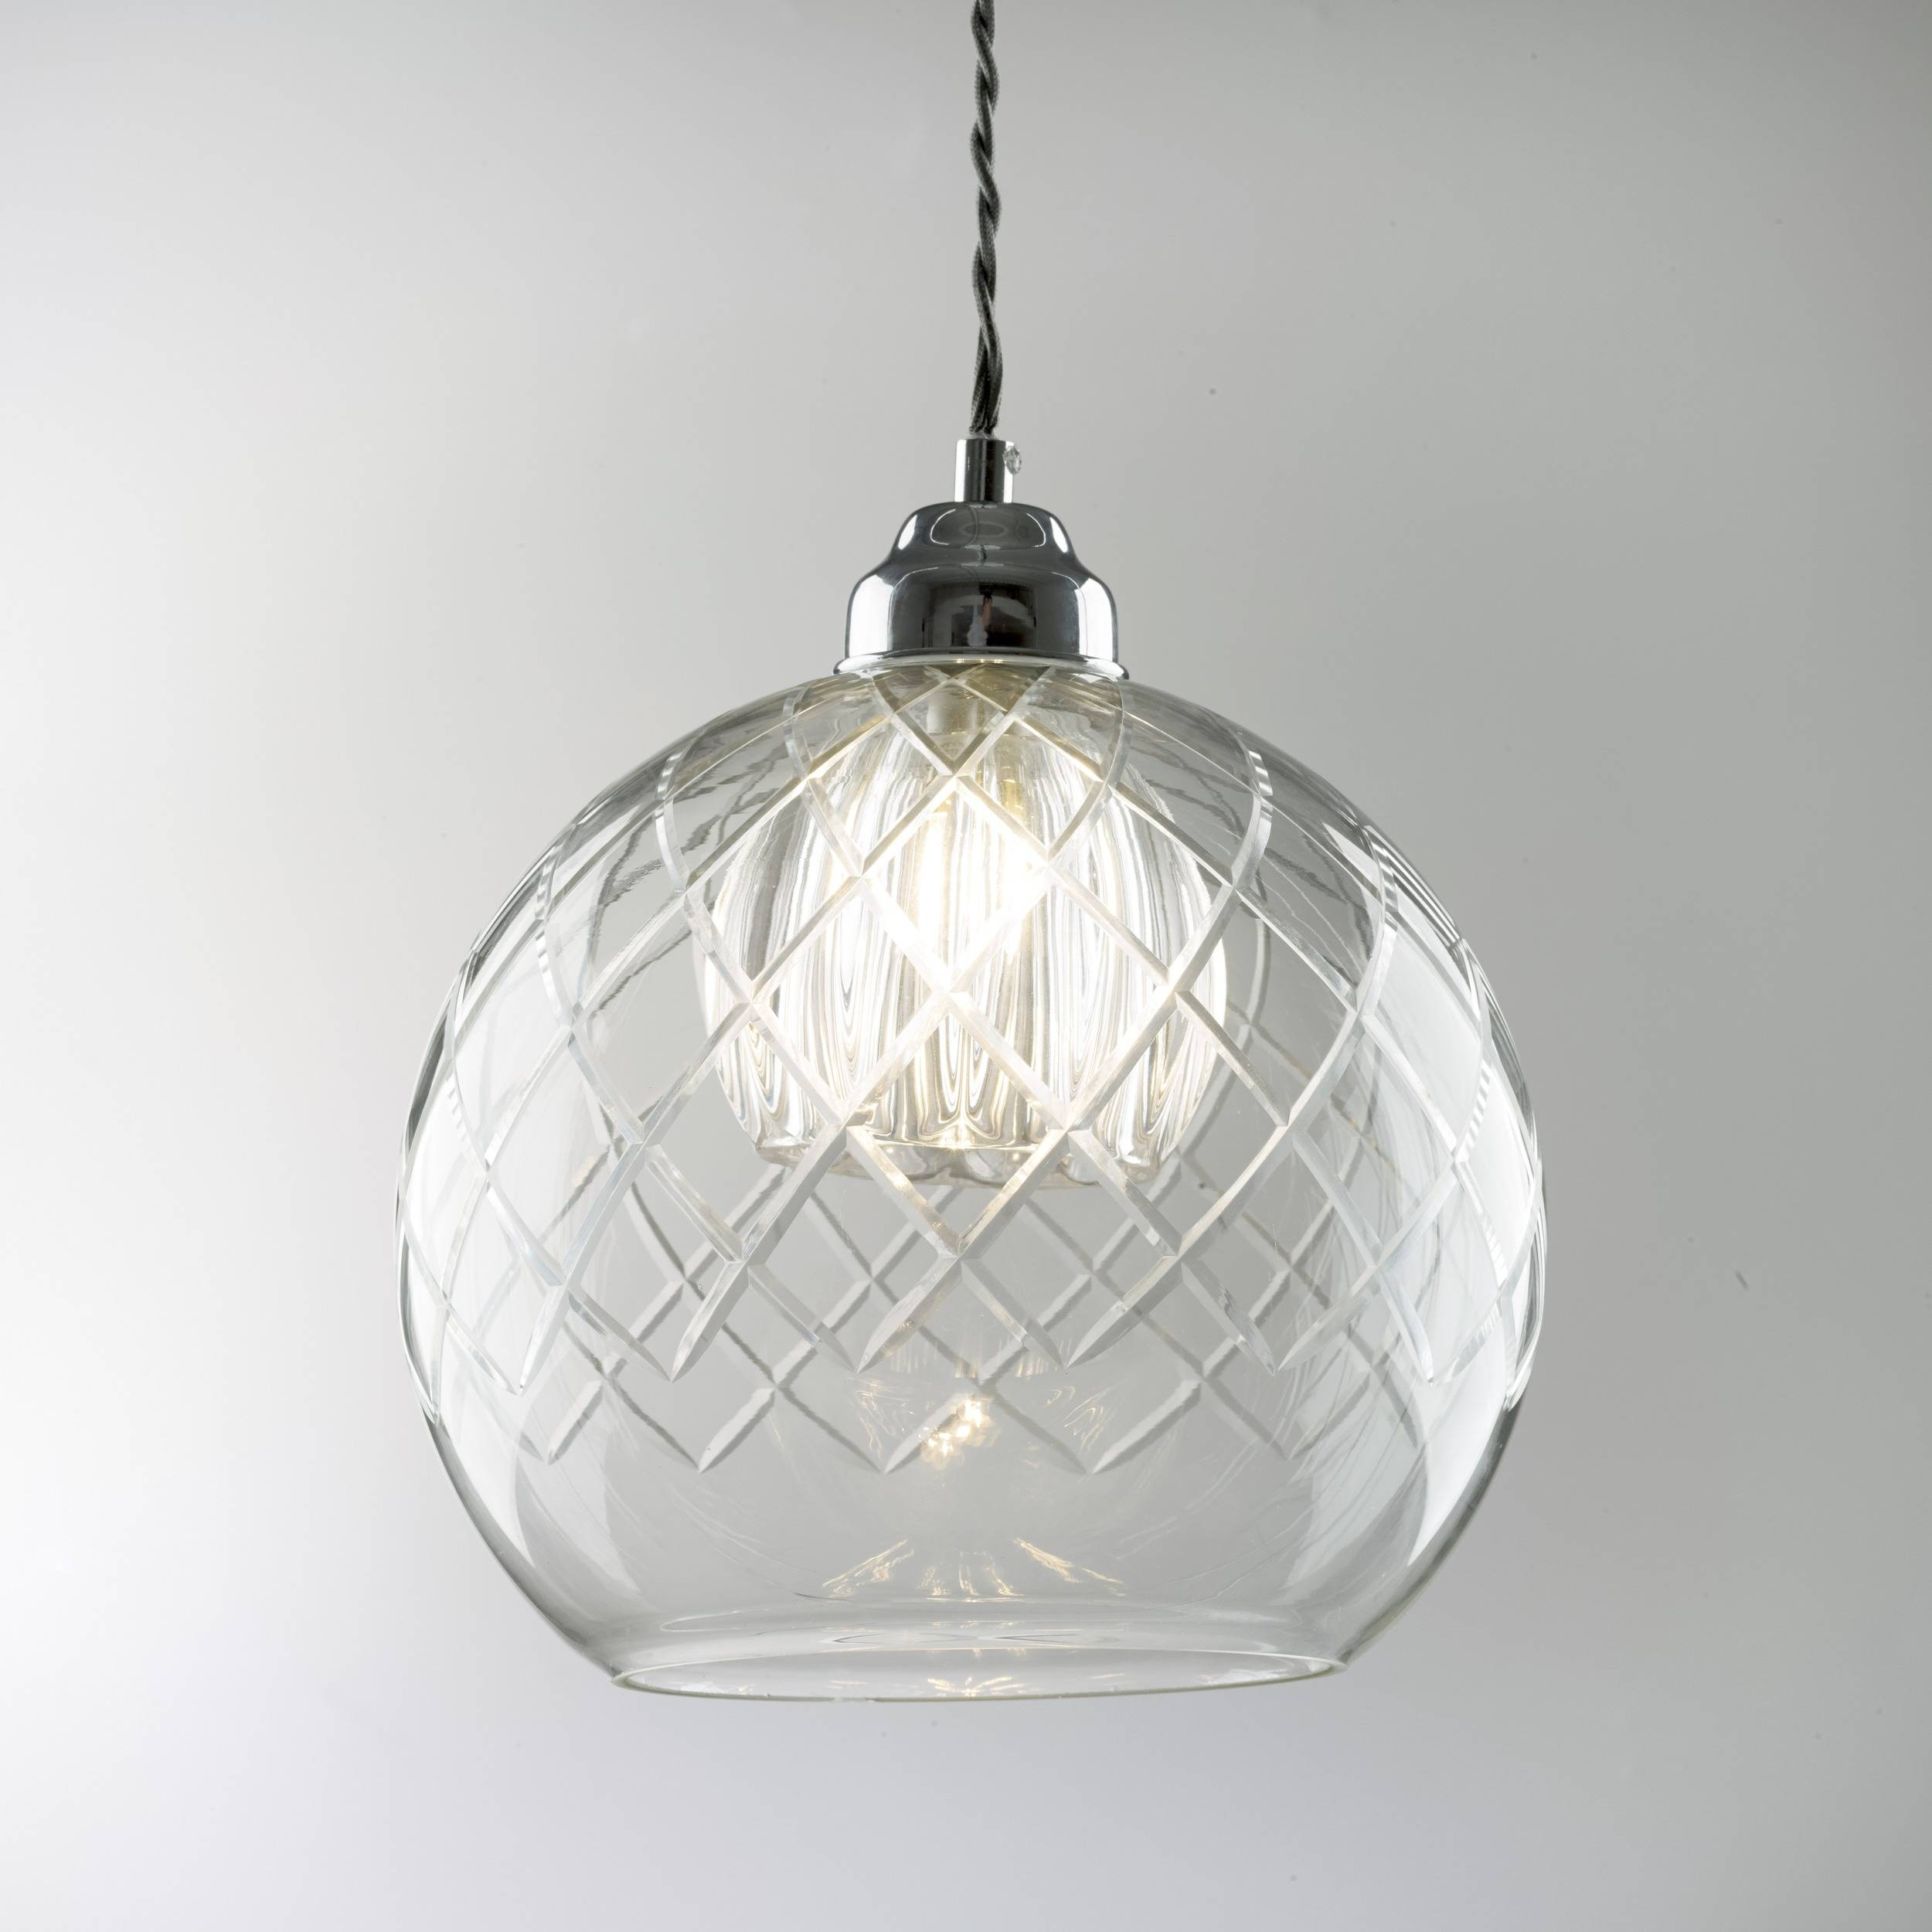 Amusing Clear Glass Pendant Light 79 With Additional Tech Lighting regarding Tech Lighting Australia (Image 2 of 15)